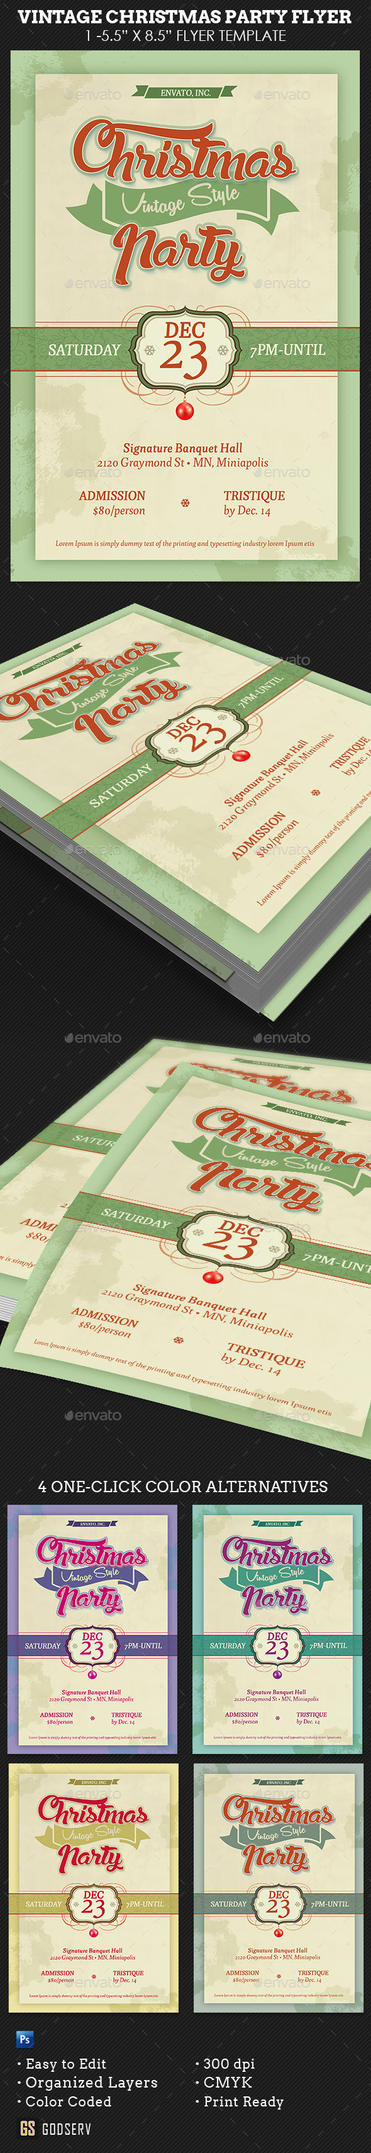 Vintage Christmas Party Flyer Template by Godserv